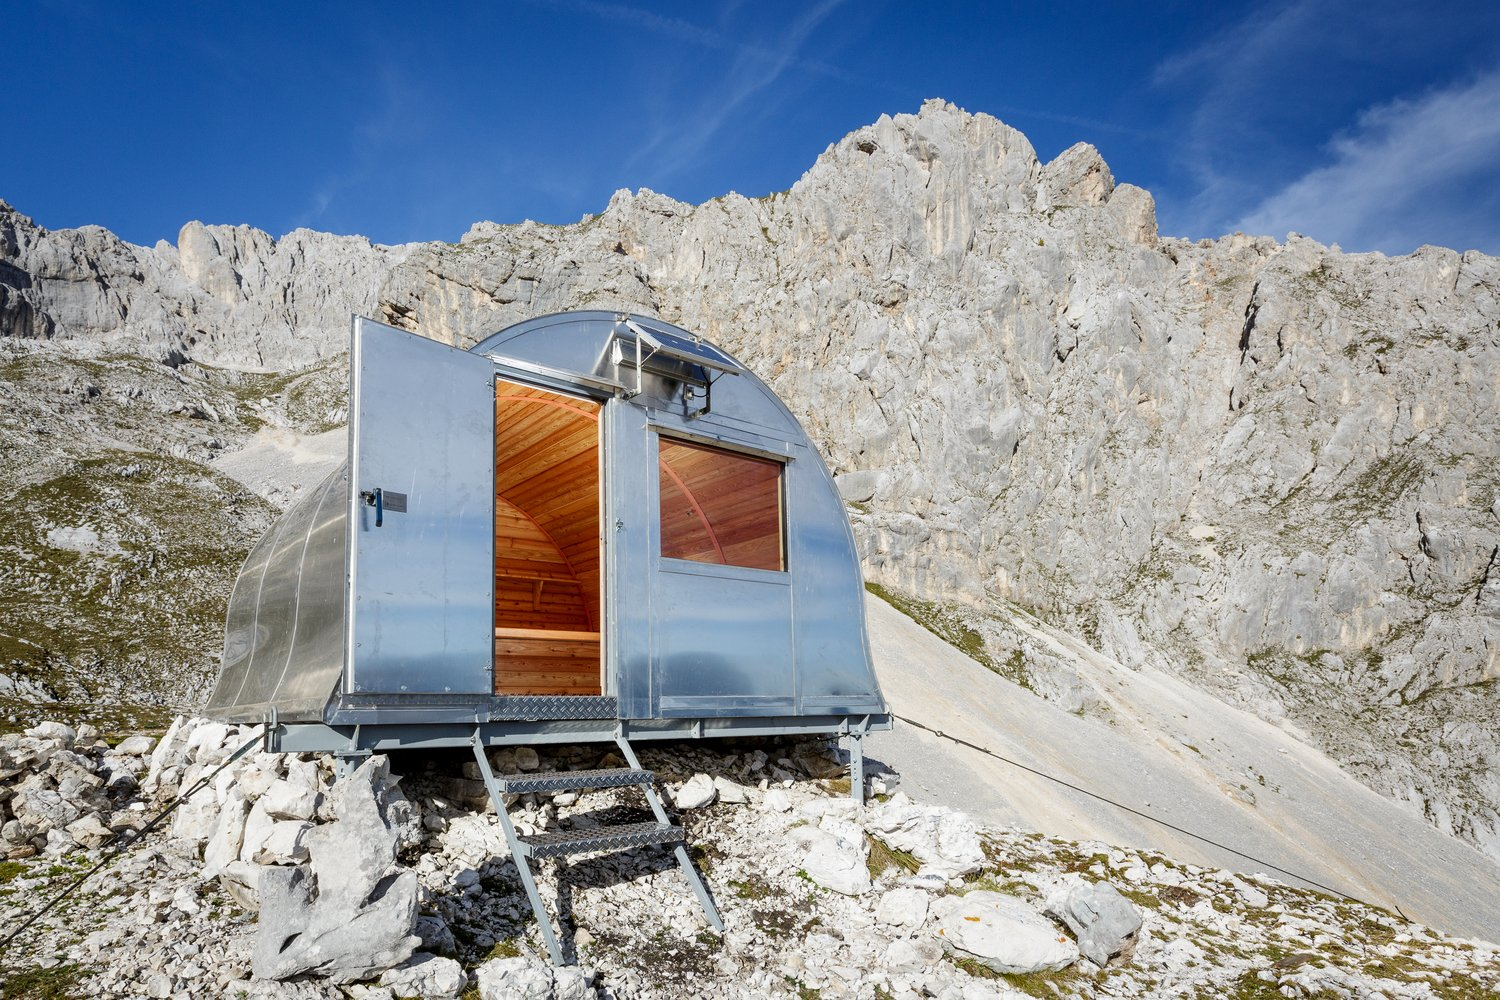 Via ArchDaily, photo by Anze Cokl.  Cabins & Hideouts